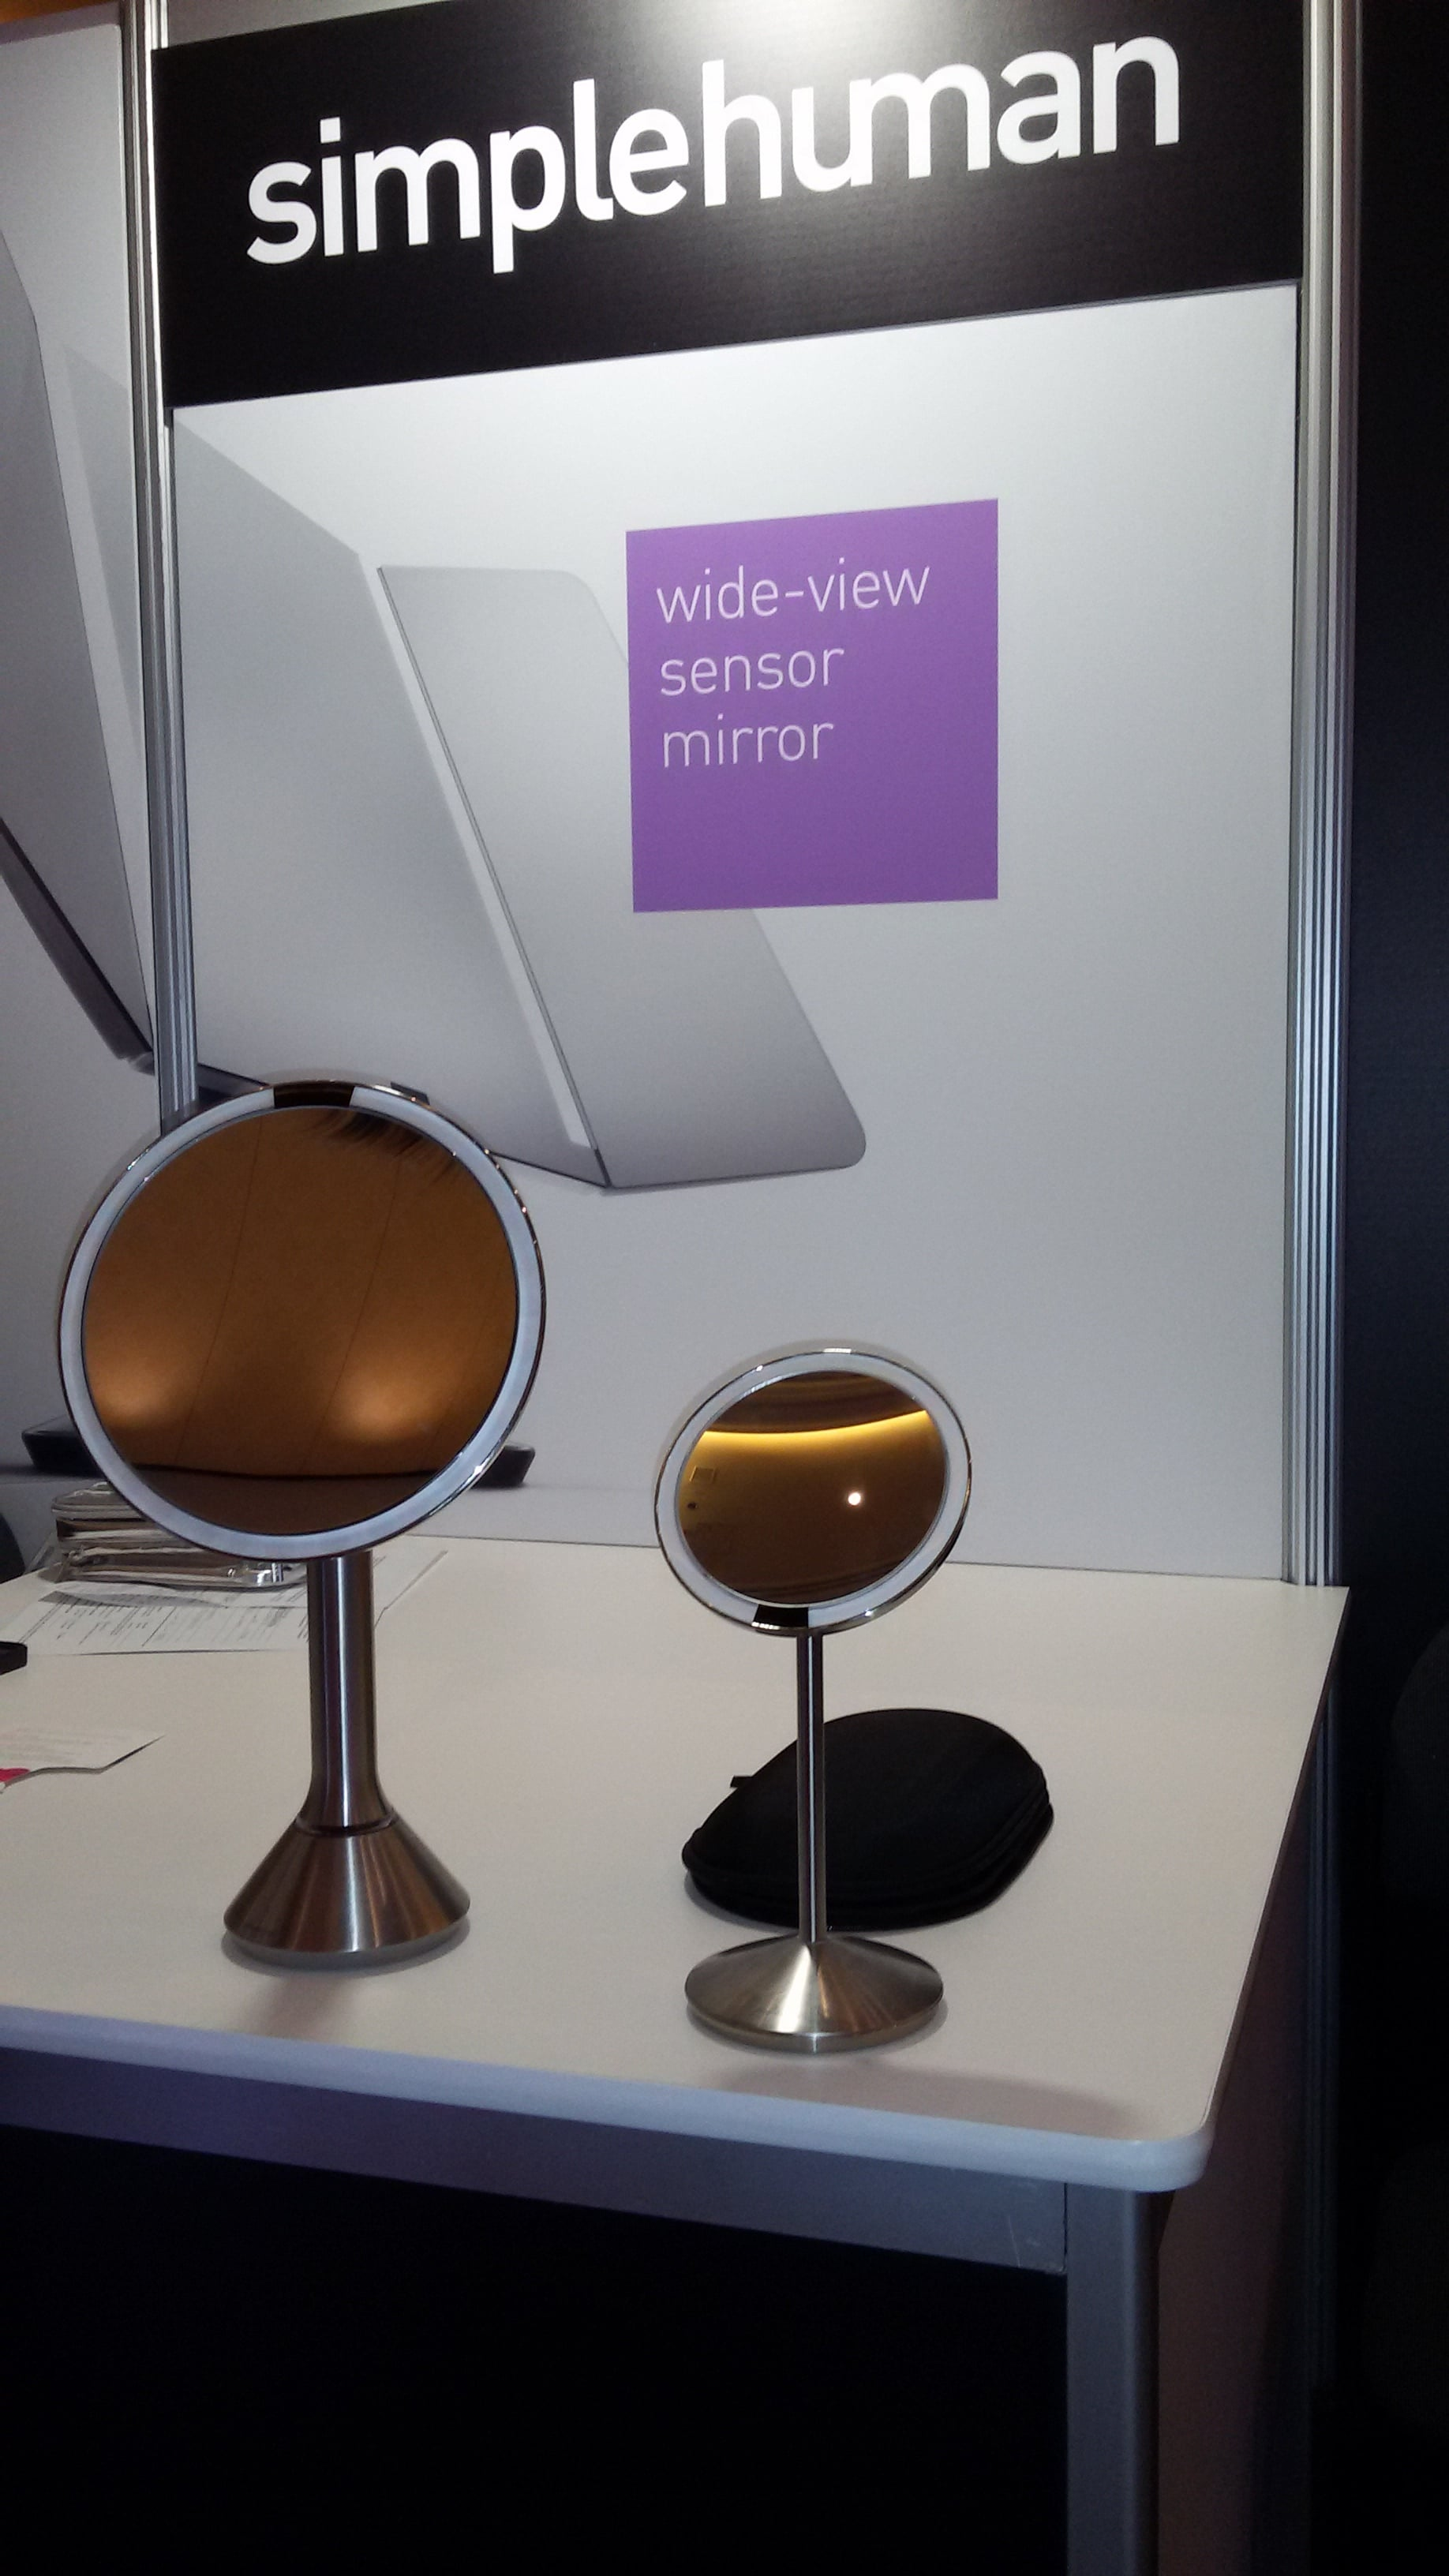 Simple Human this mirror turns on by sensor and gives you true sunlight. They also have a larger one which has an app where you can adjust the lighting depending on where you are going and time of day.No need to guess anymore about how your makeup will look once you leave your home.